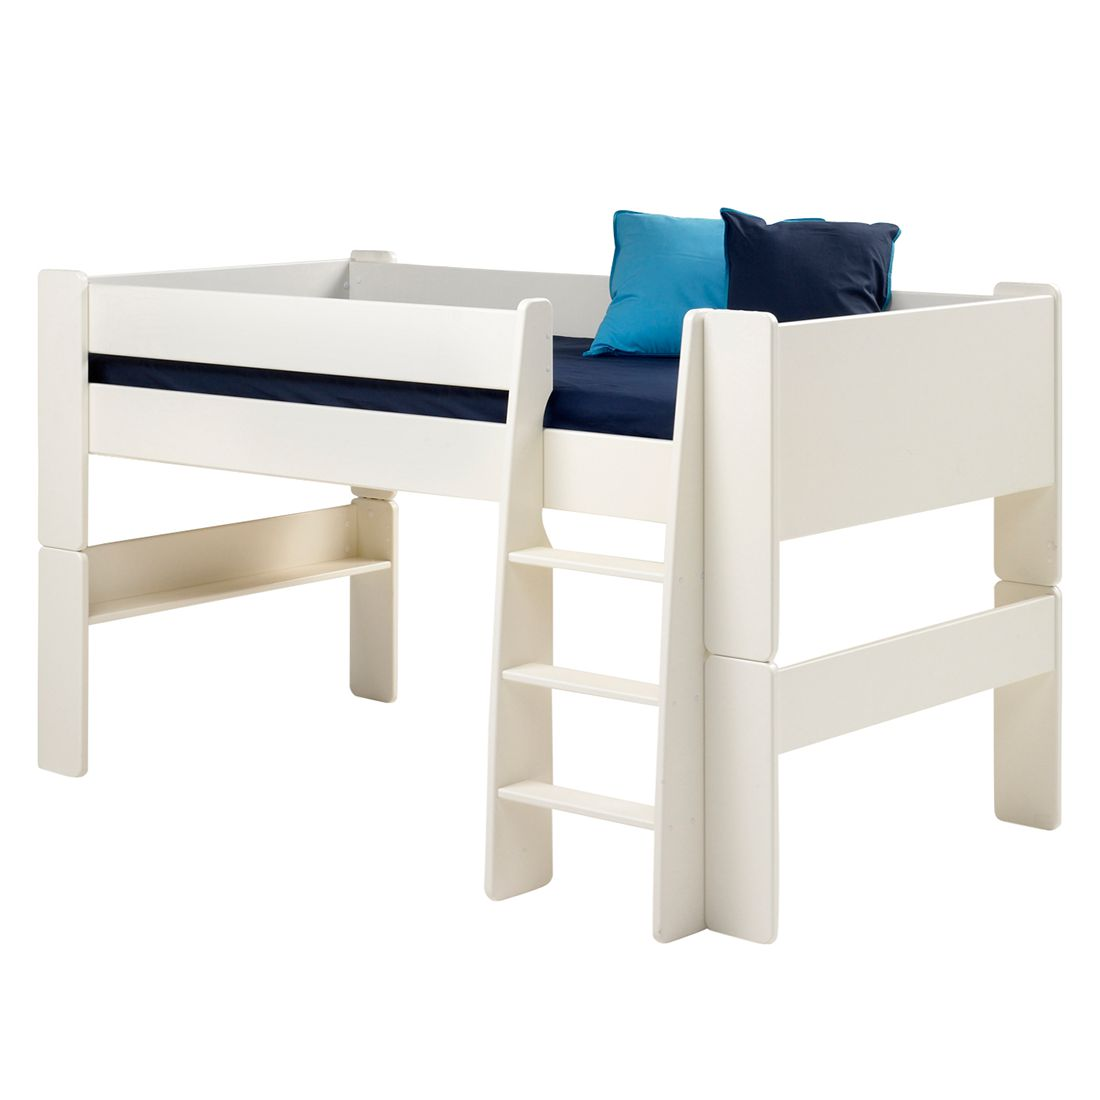 Lit mezzanine Steens for Kids - Blanc, Steens